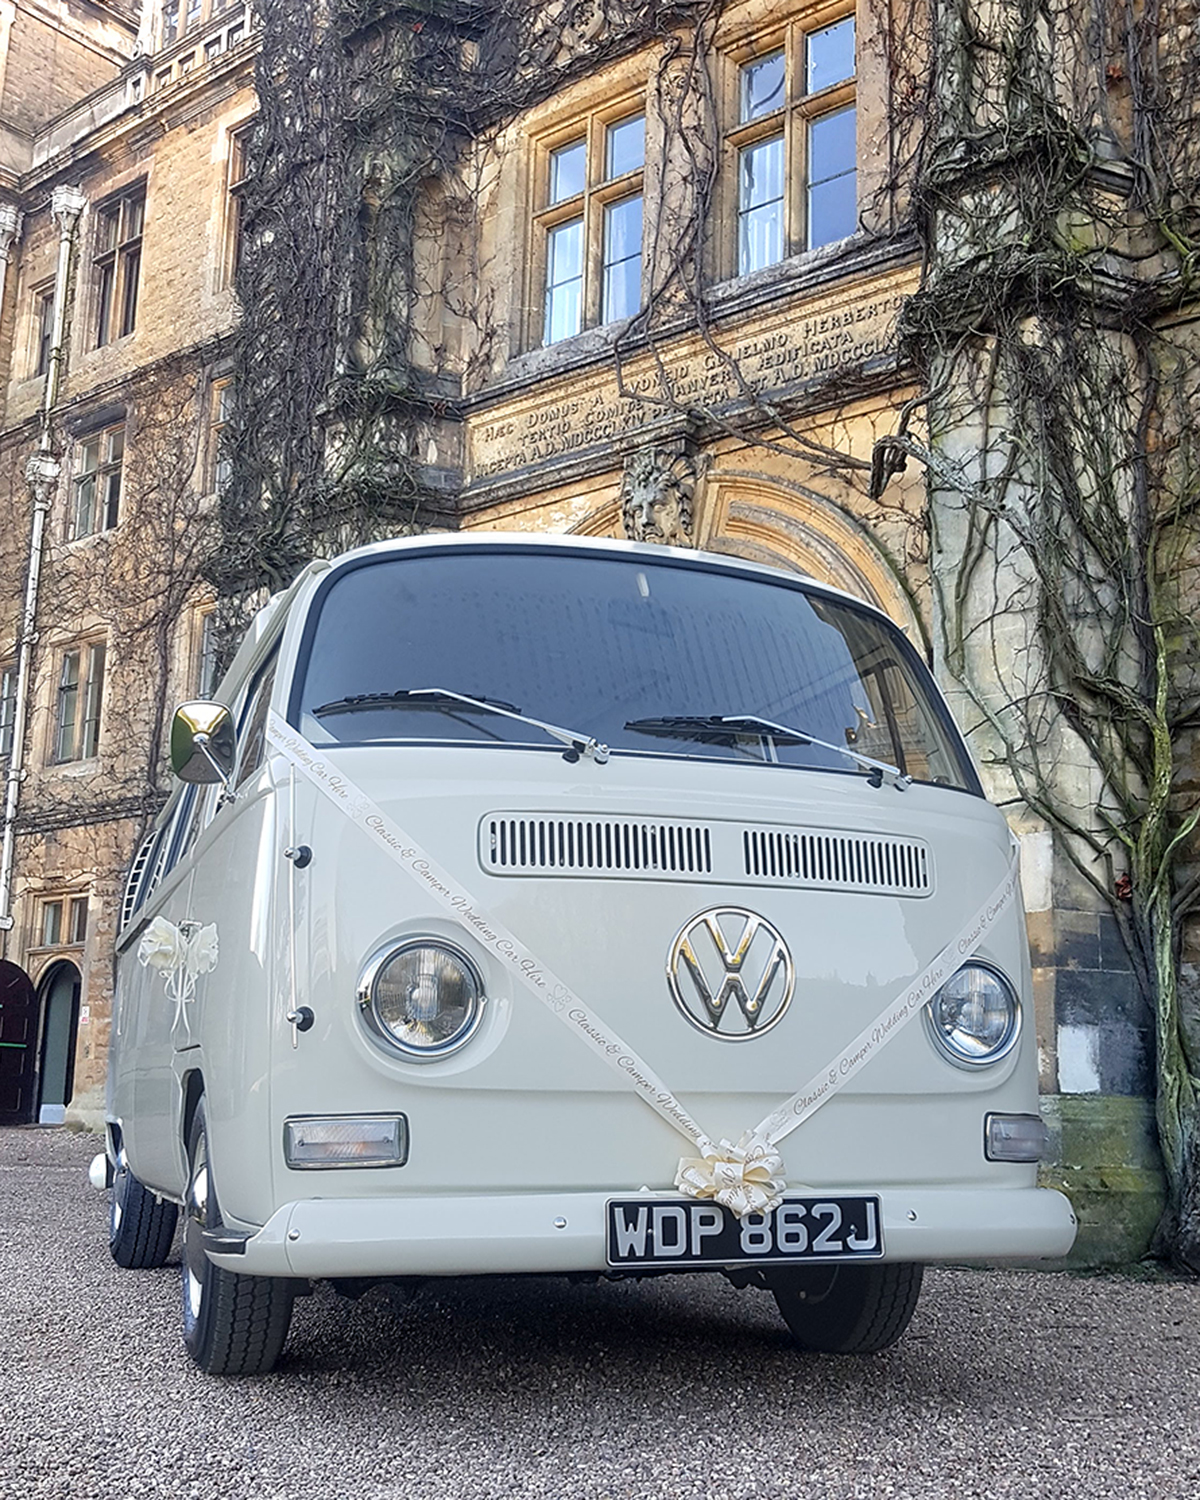 Classic and Camper VW Campervan Wedding Hire - Showing the interior and the unique sliding door panel